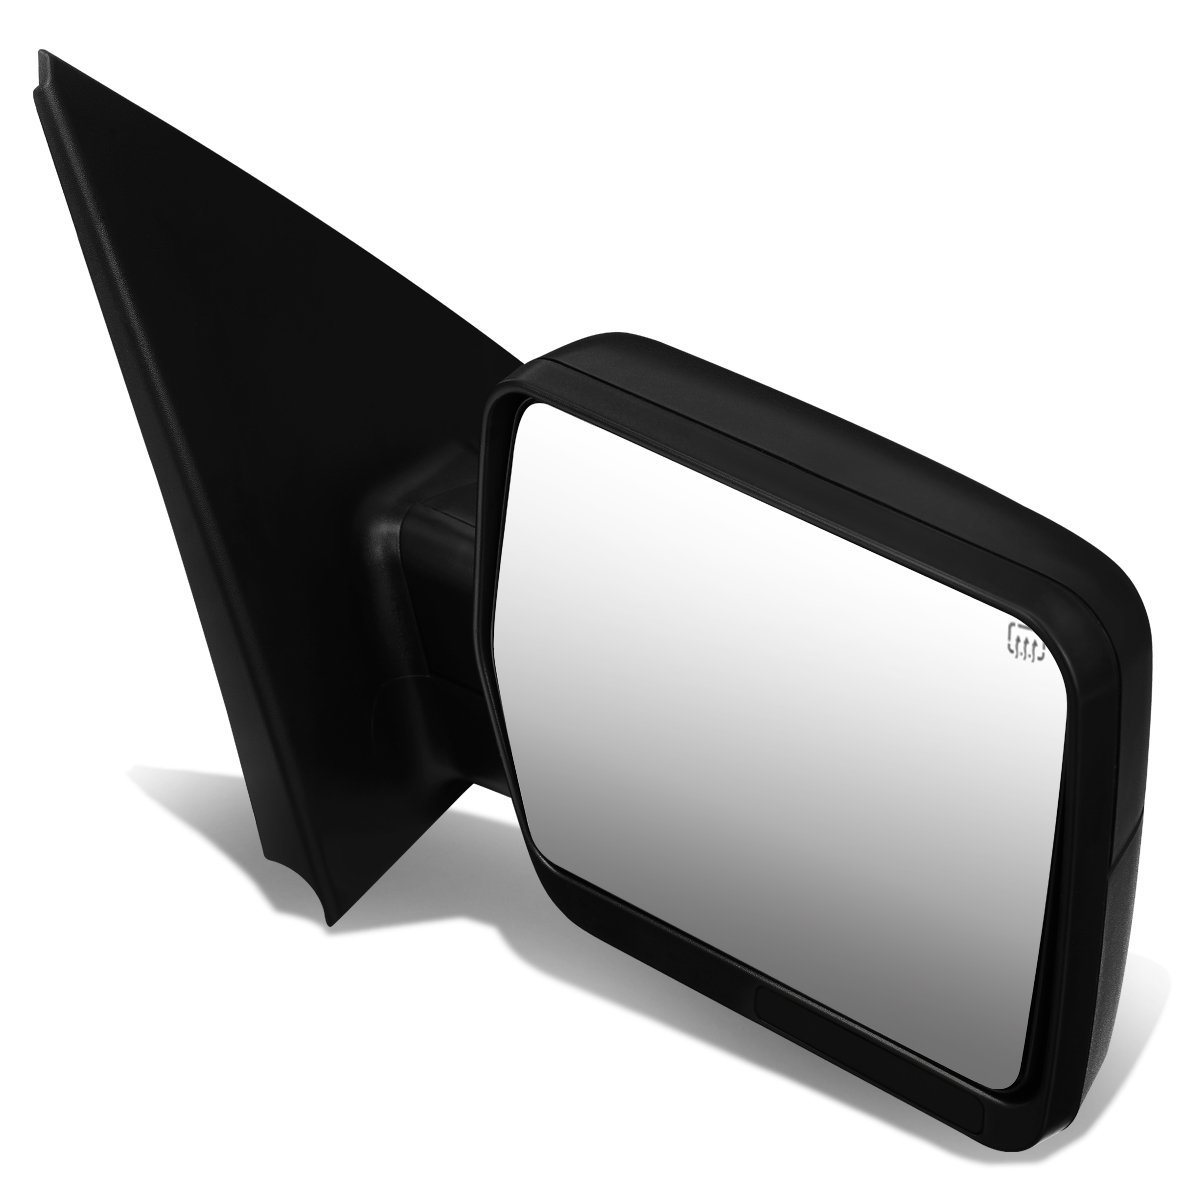 DNA motoring TWM-018-T111-BK-R, Towing Side Mirror Assembly (Right Side Only)